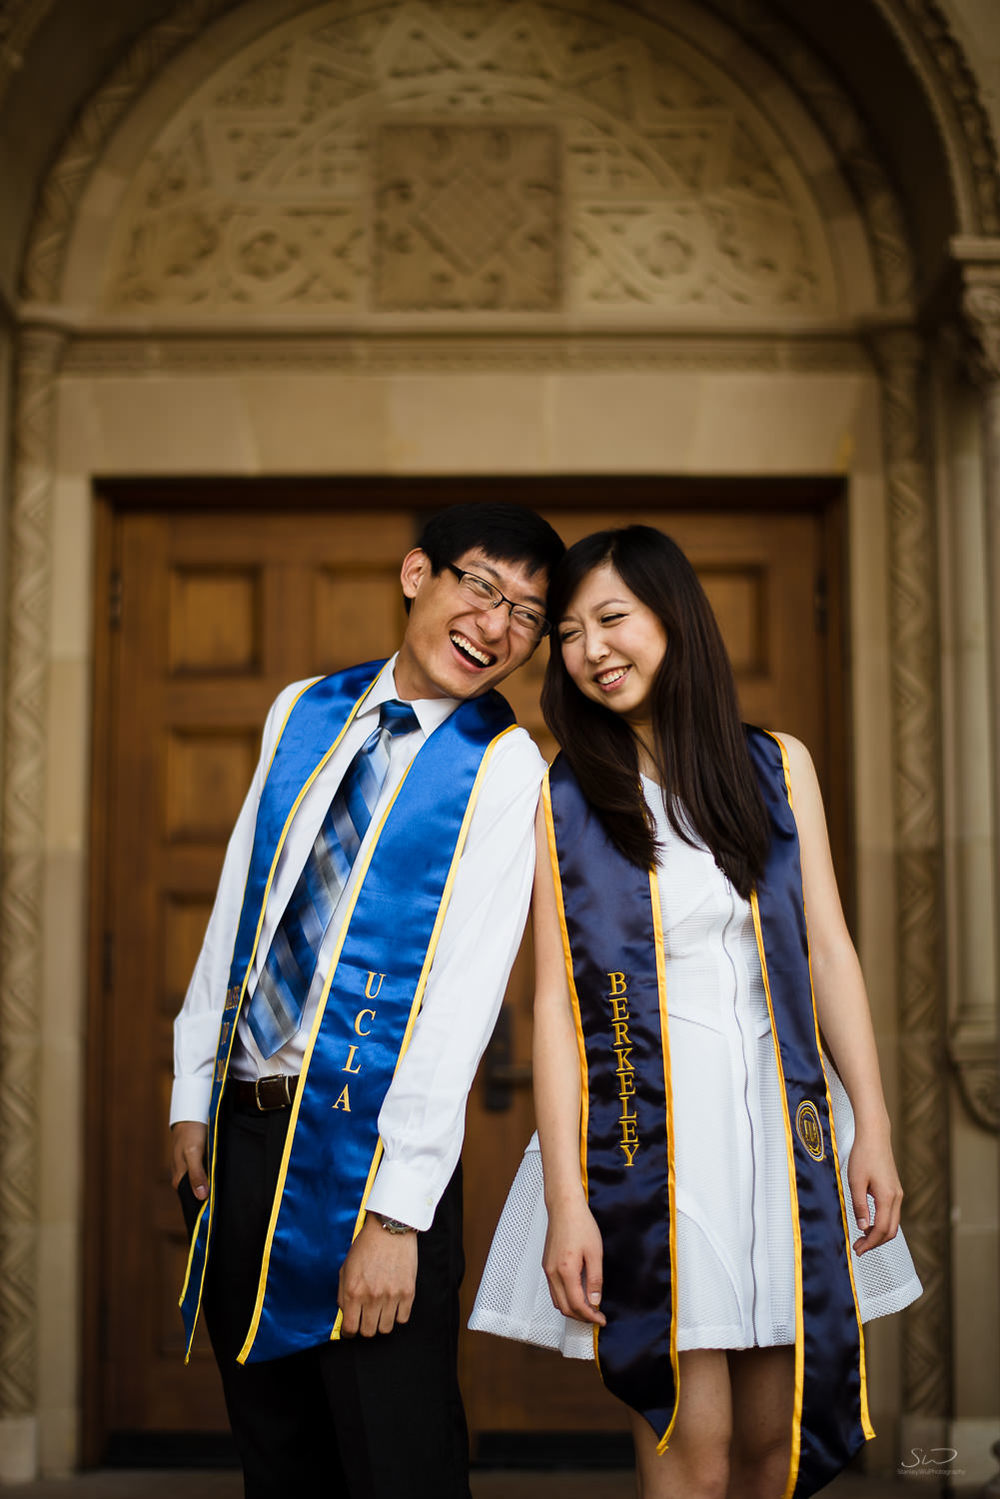 ucla-uc-berkeley-couple-grad-6.jpg